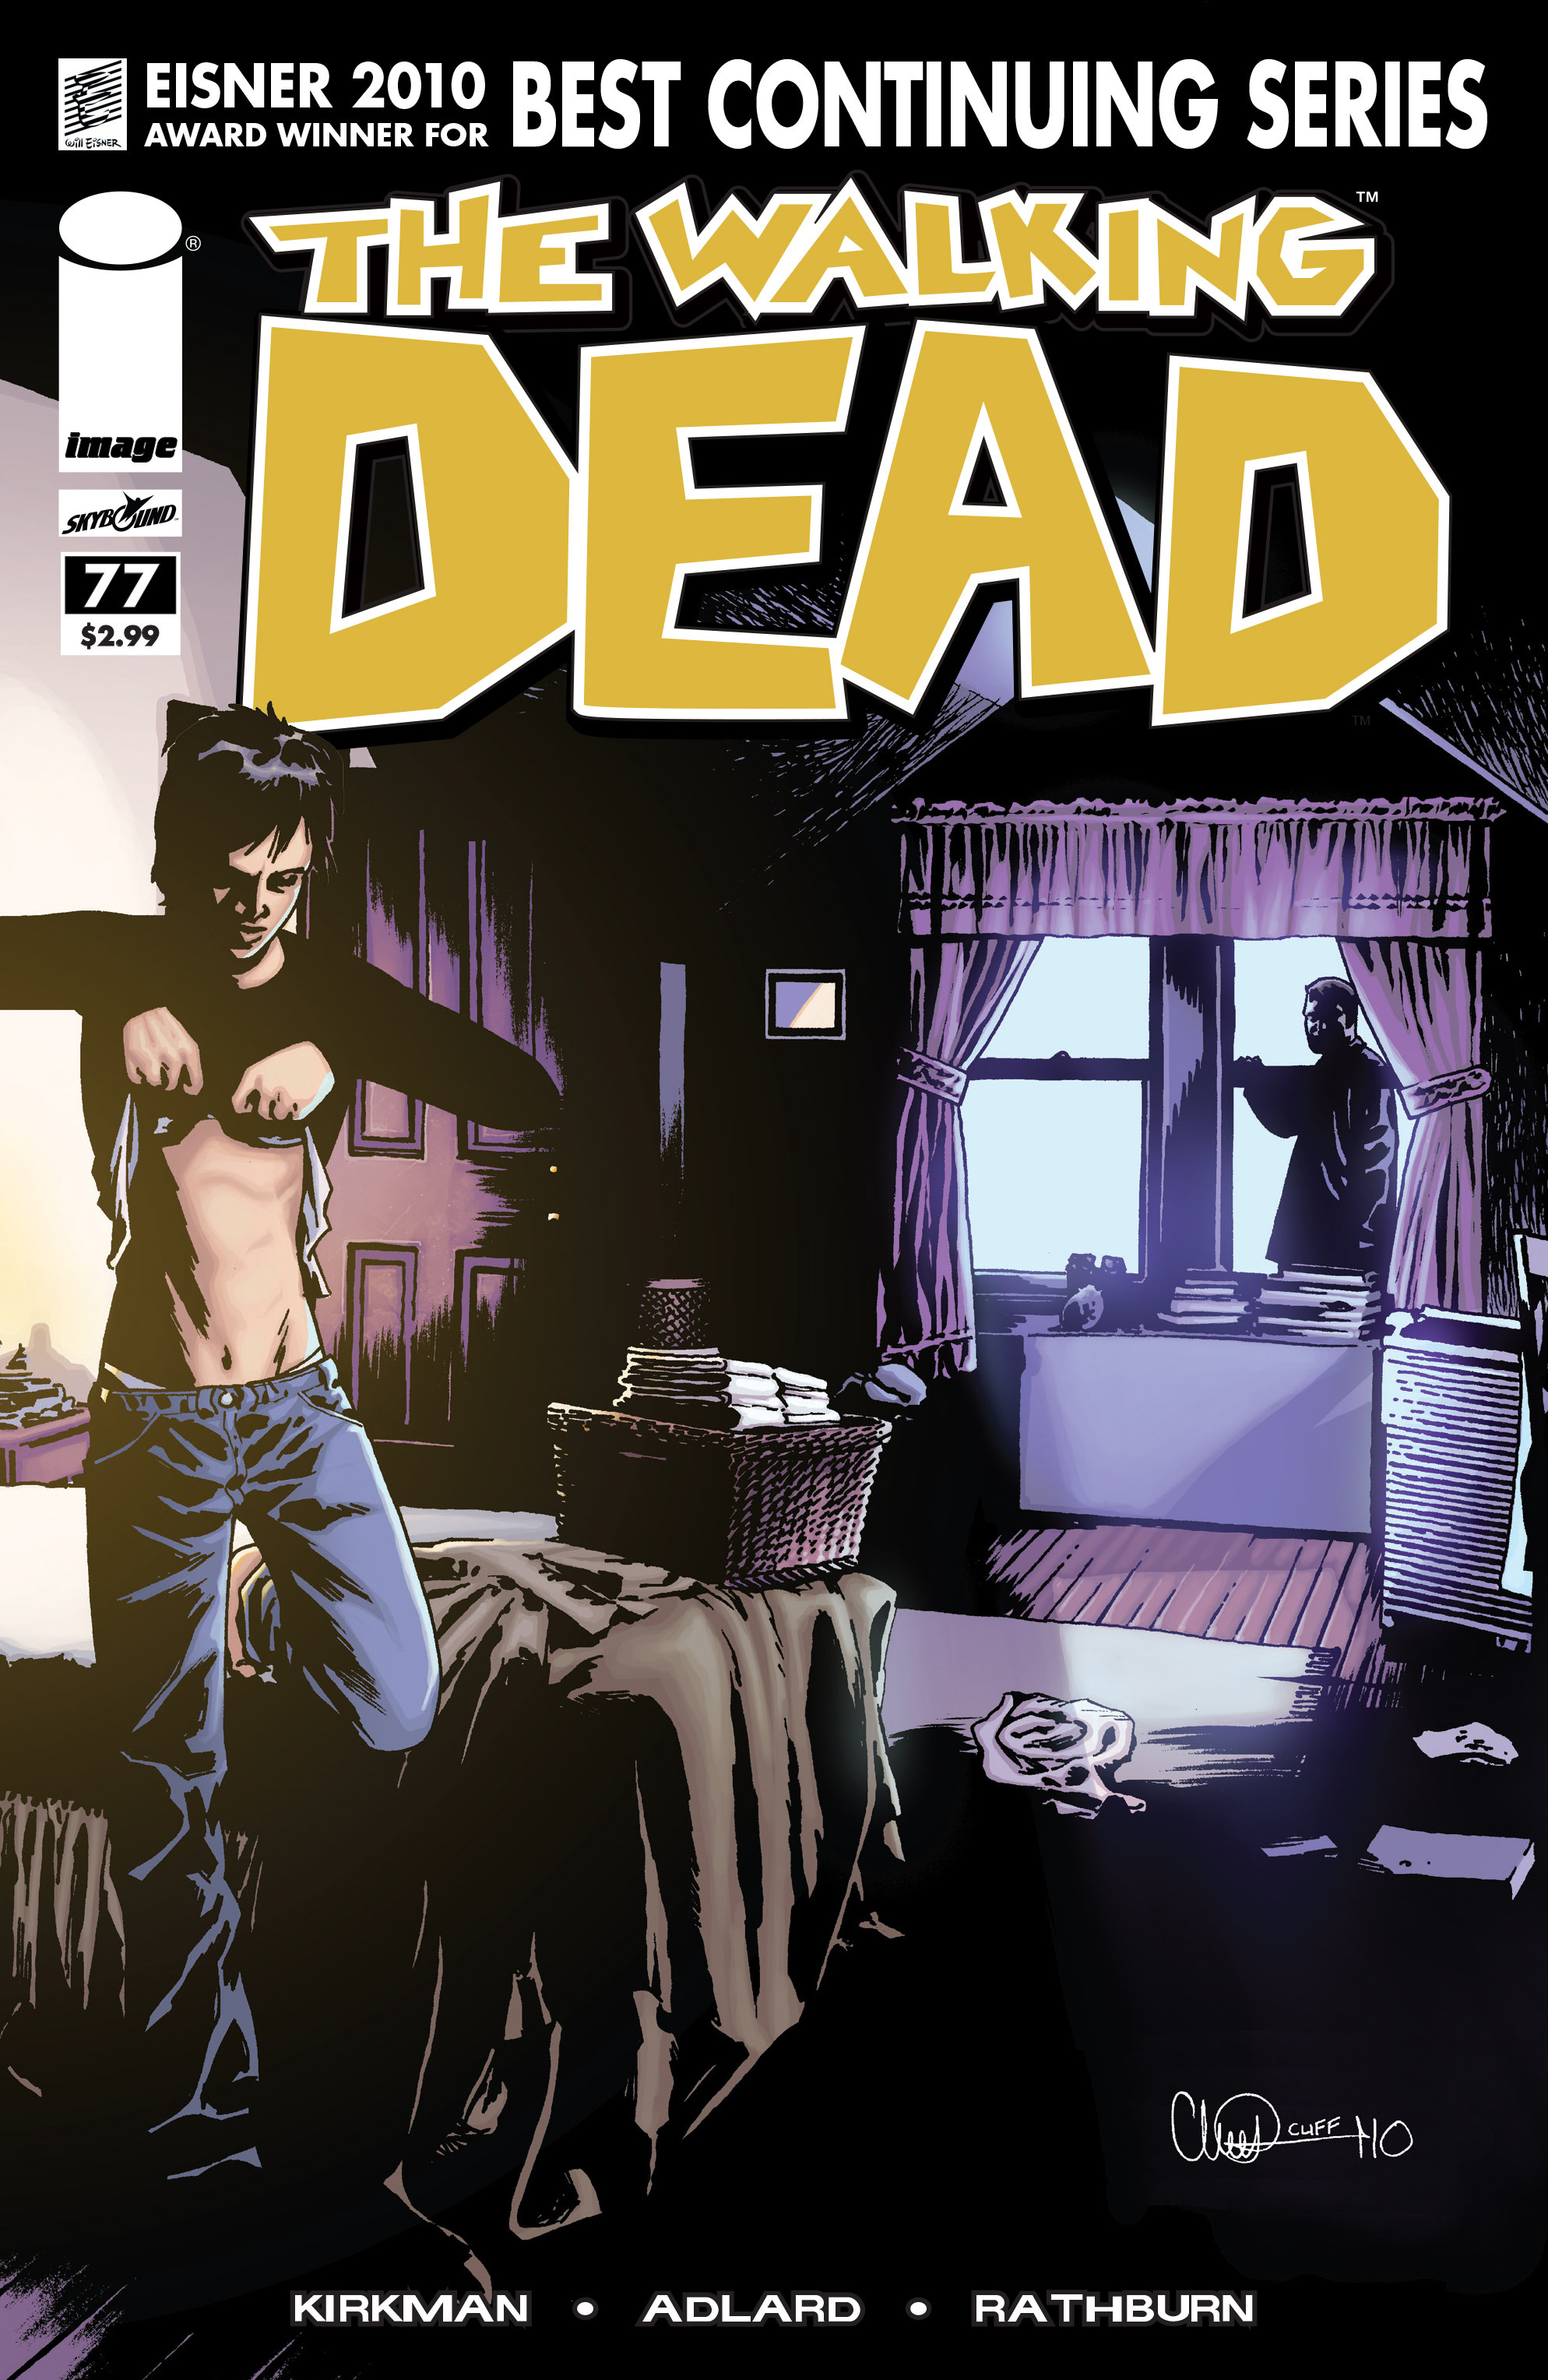 The Walking Dead Issue #77 Page 1